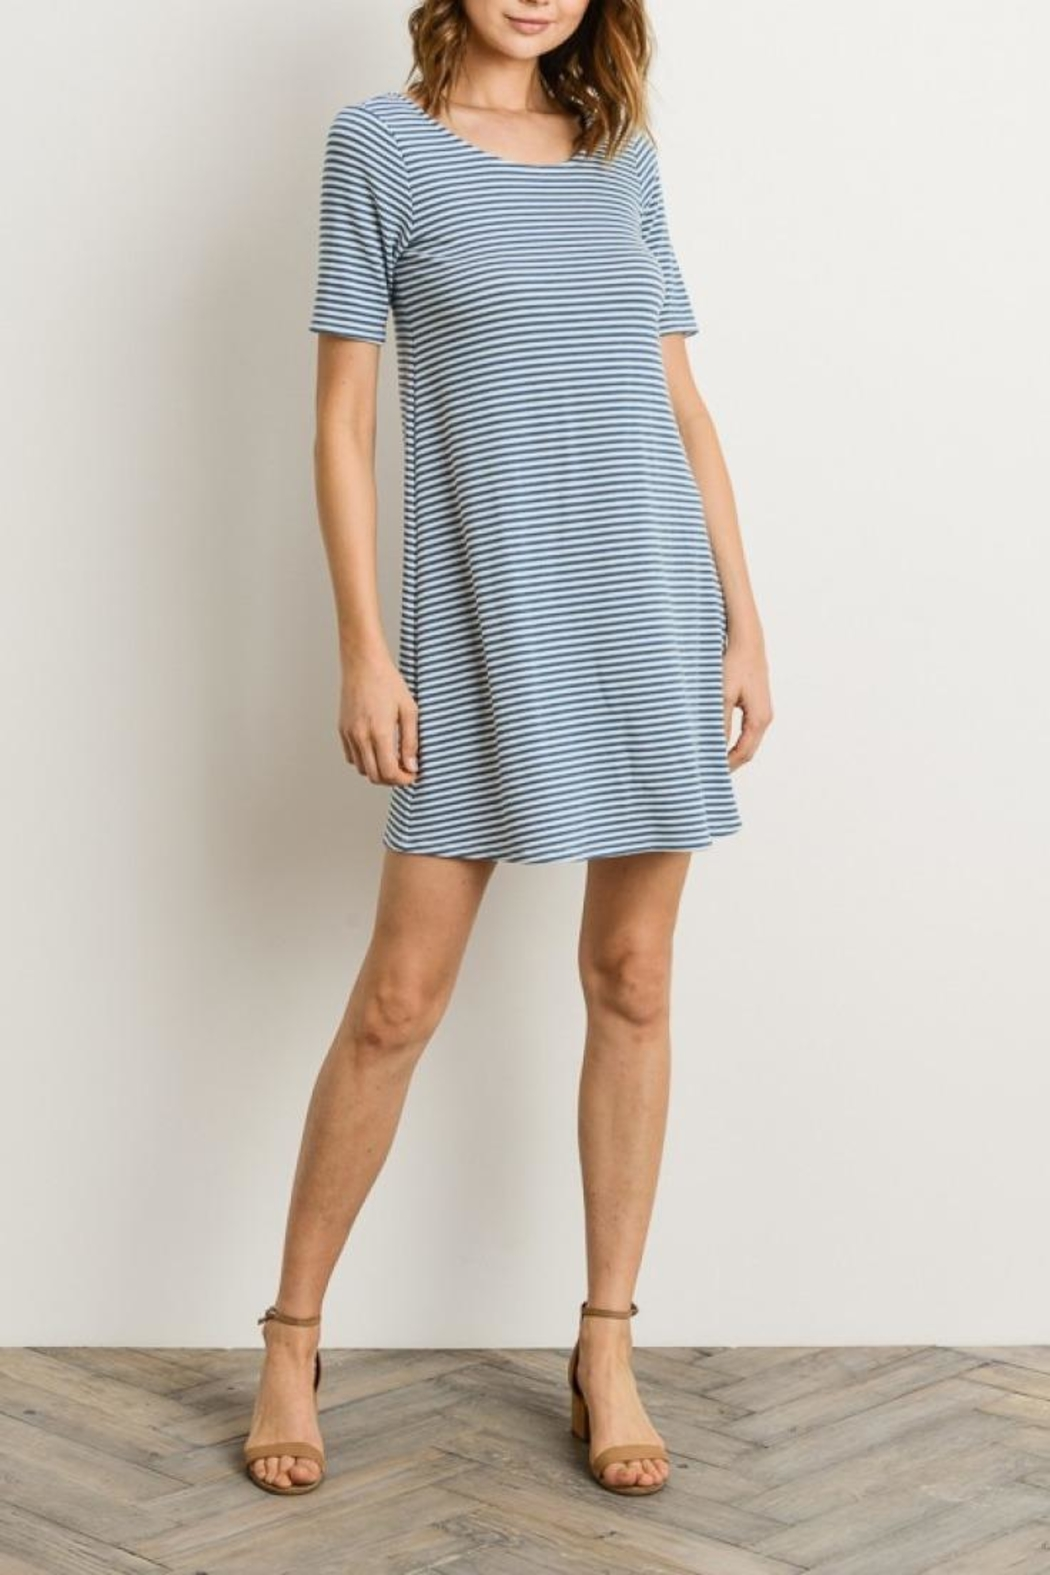 1a6e67c299 Gilli Blue Striped Dress from Illinois by The Colette Collection ...